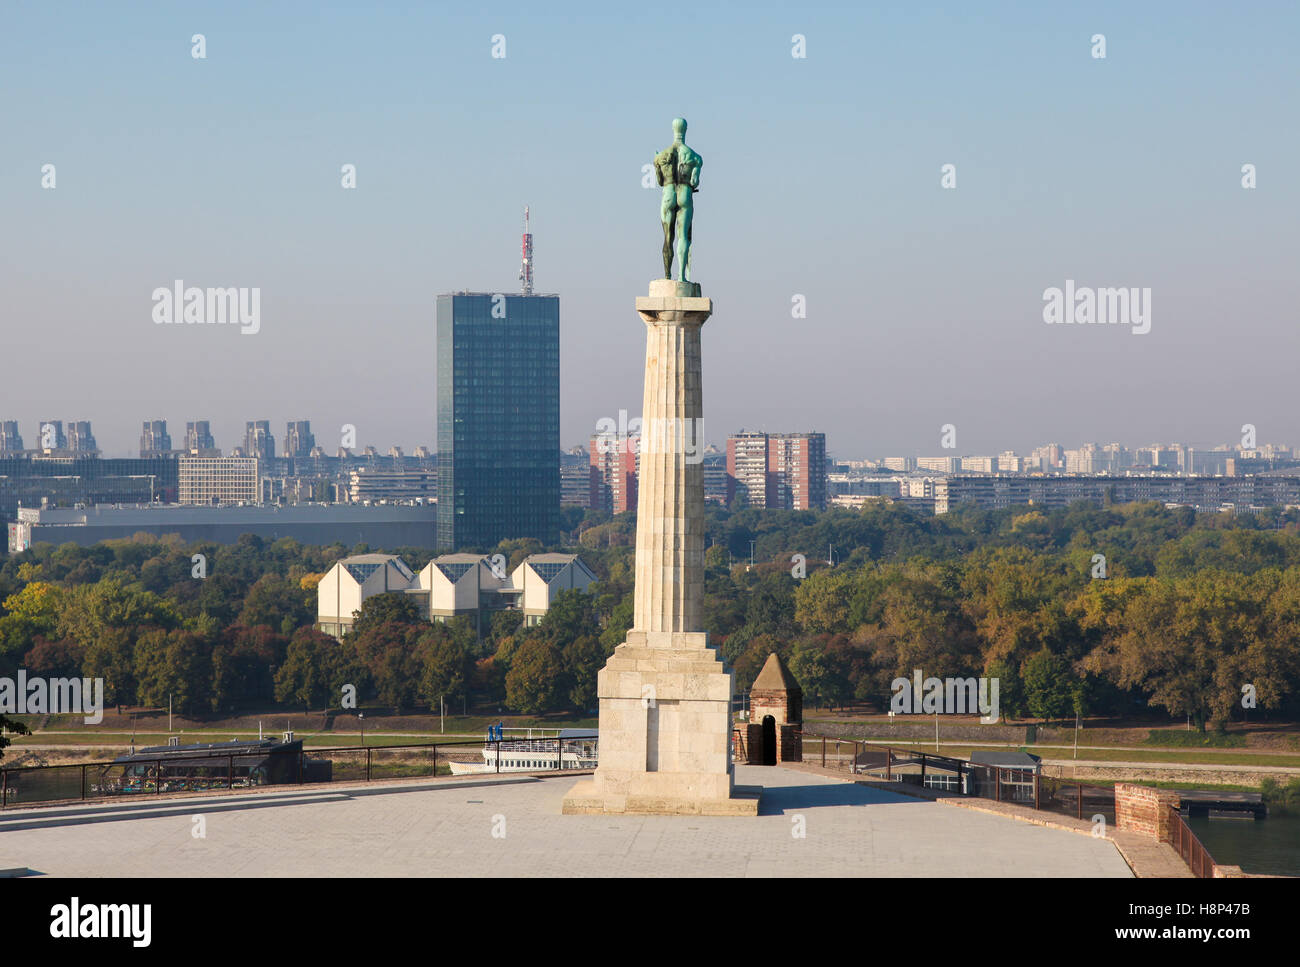 Pobednik Monument in Kalemegdan Park, the largest park and the most important historical monument in Belgrade. - Stock Image